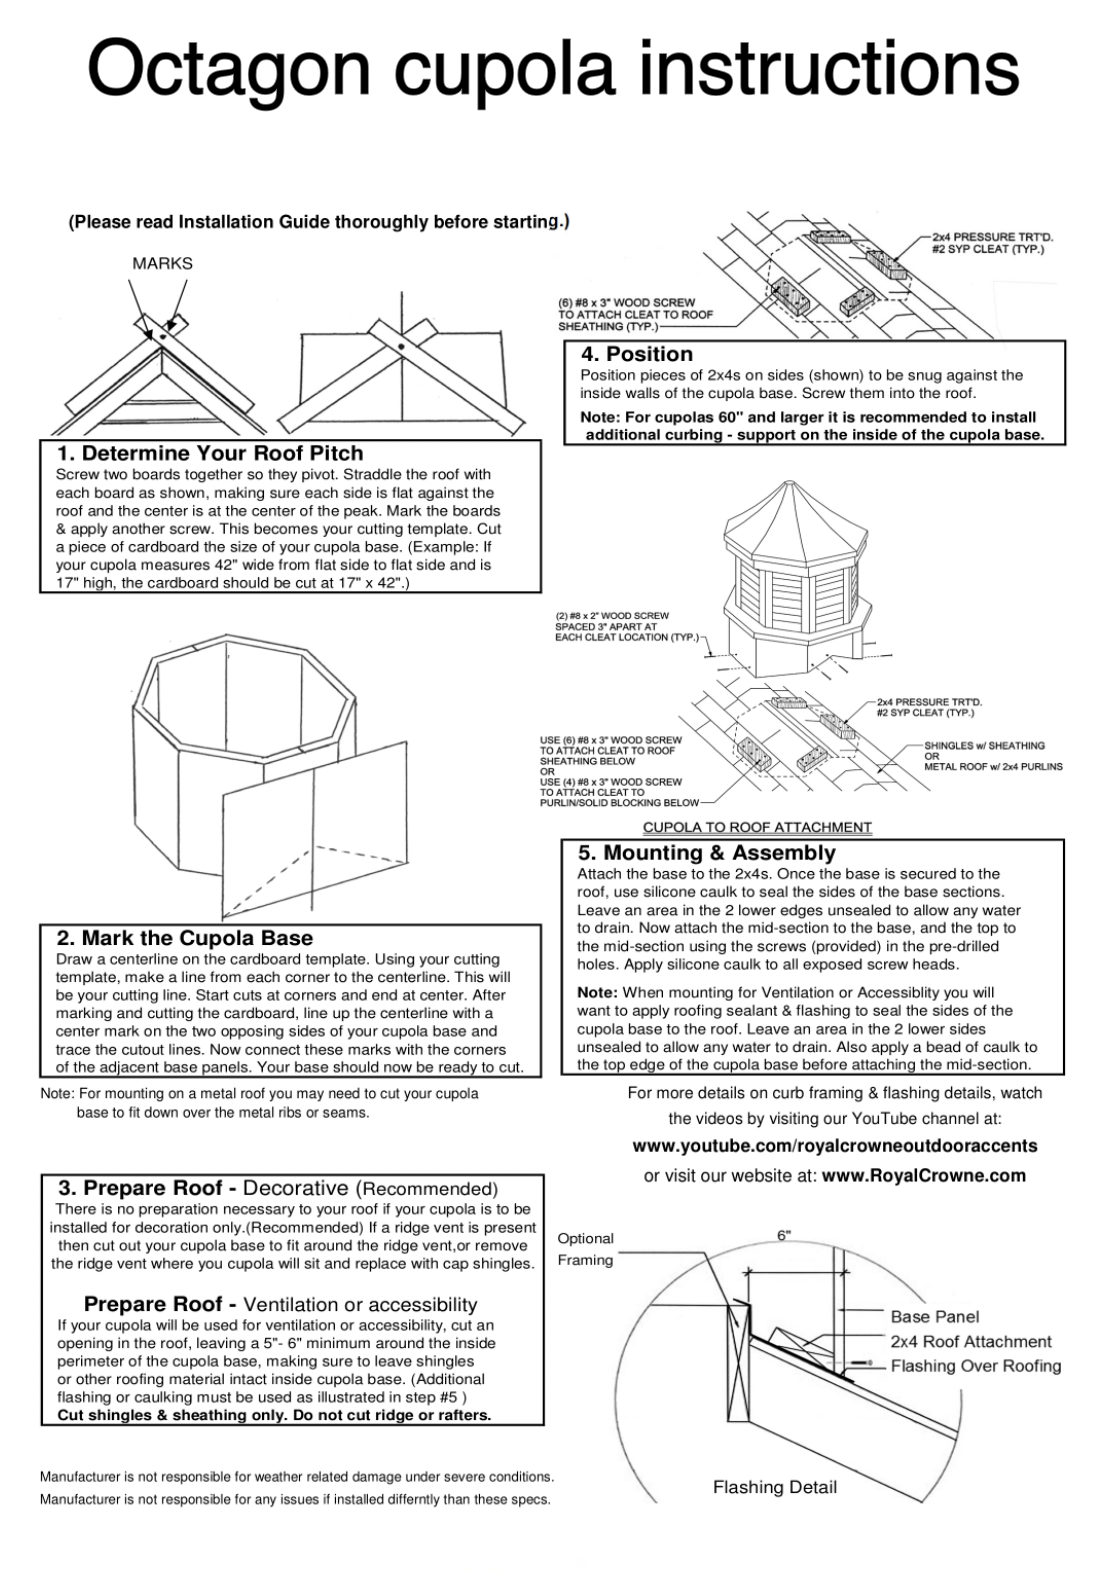 octagon-instructions.png